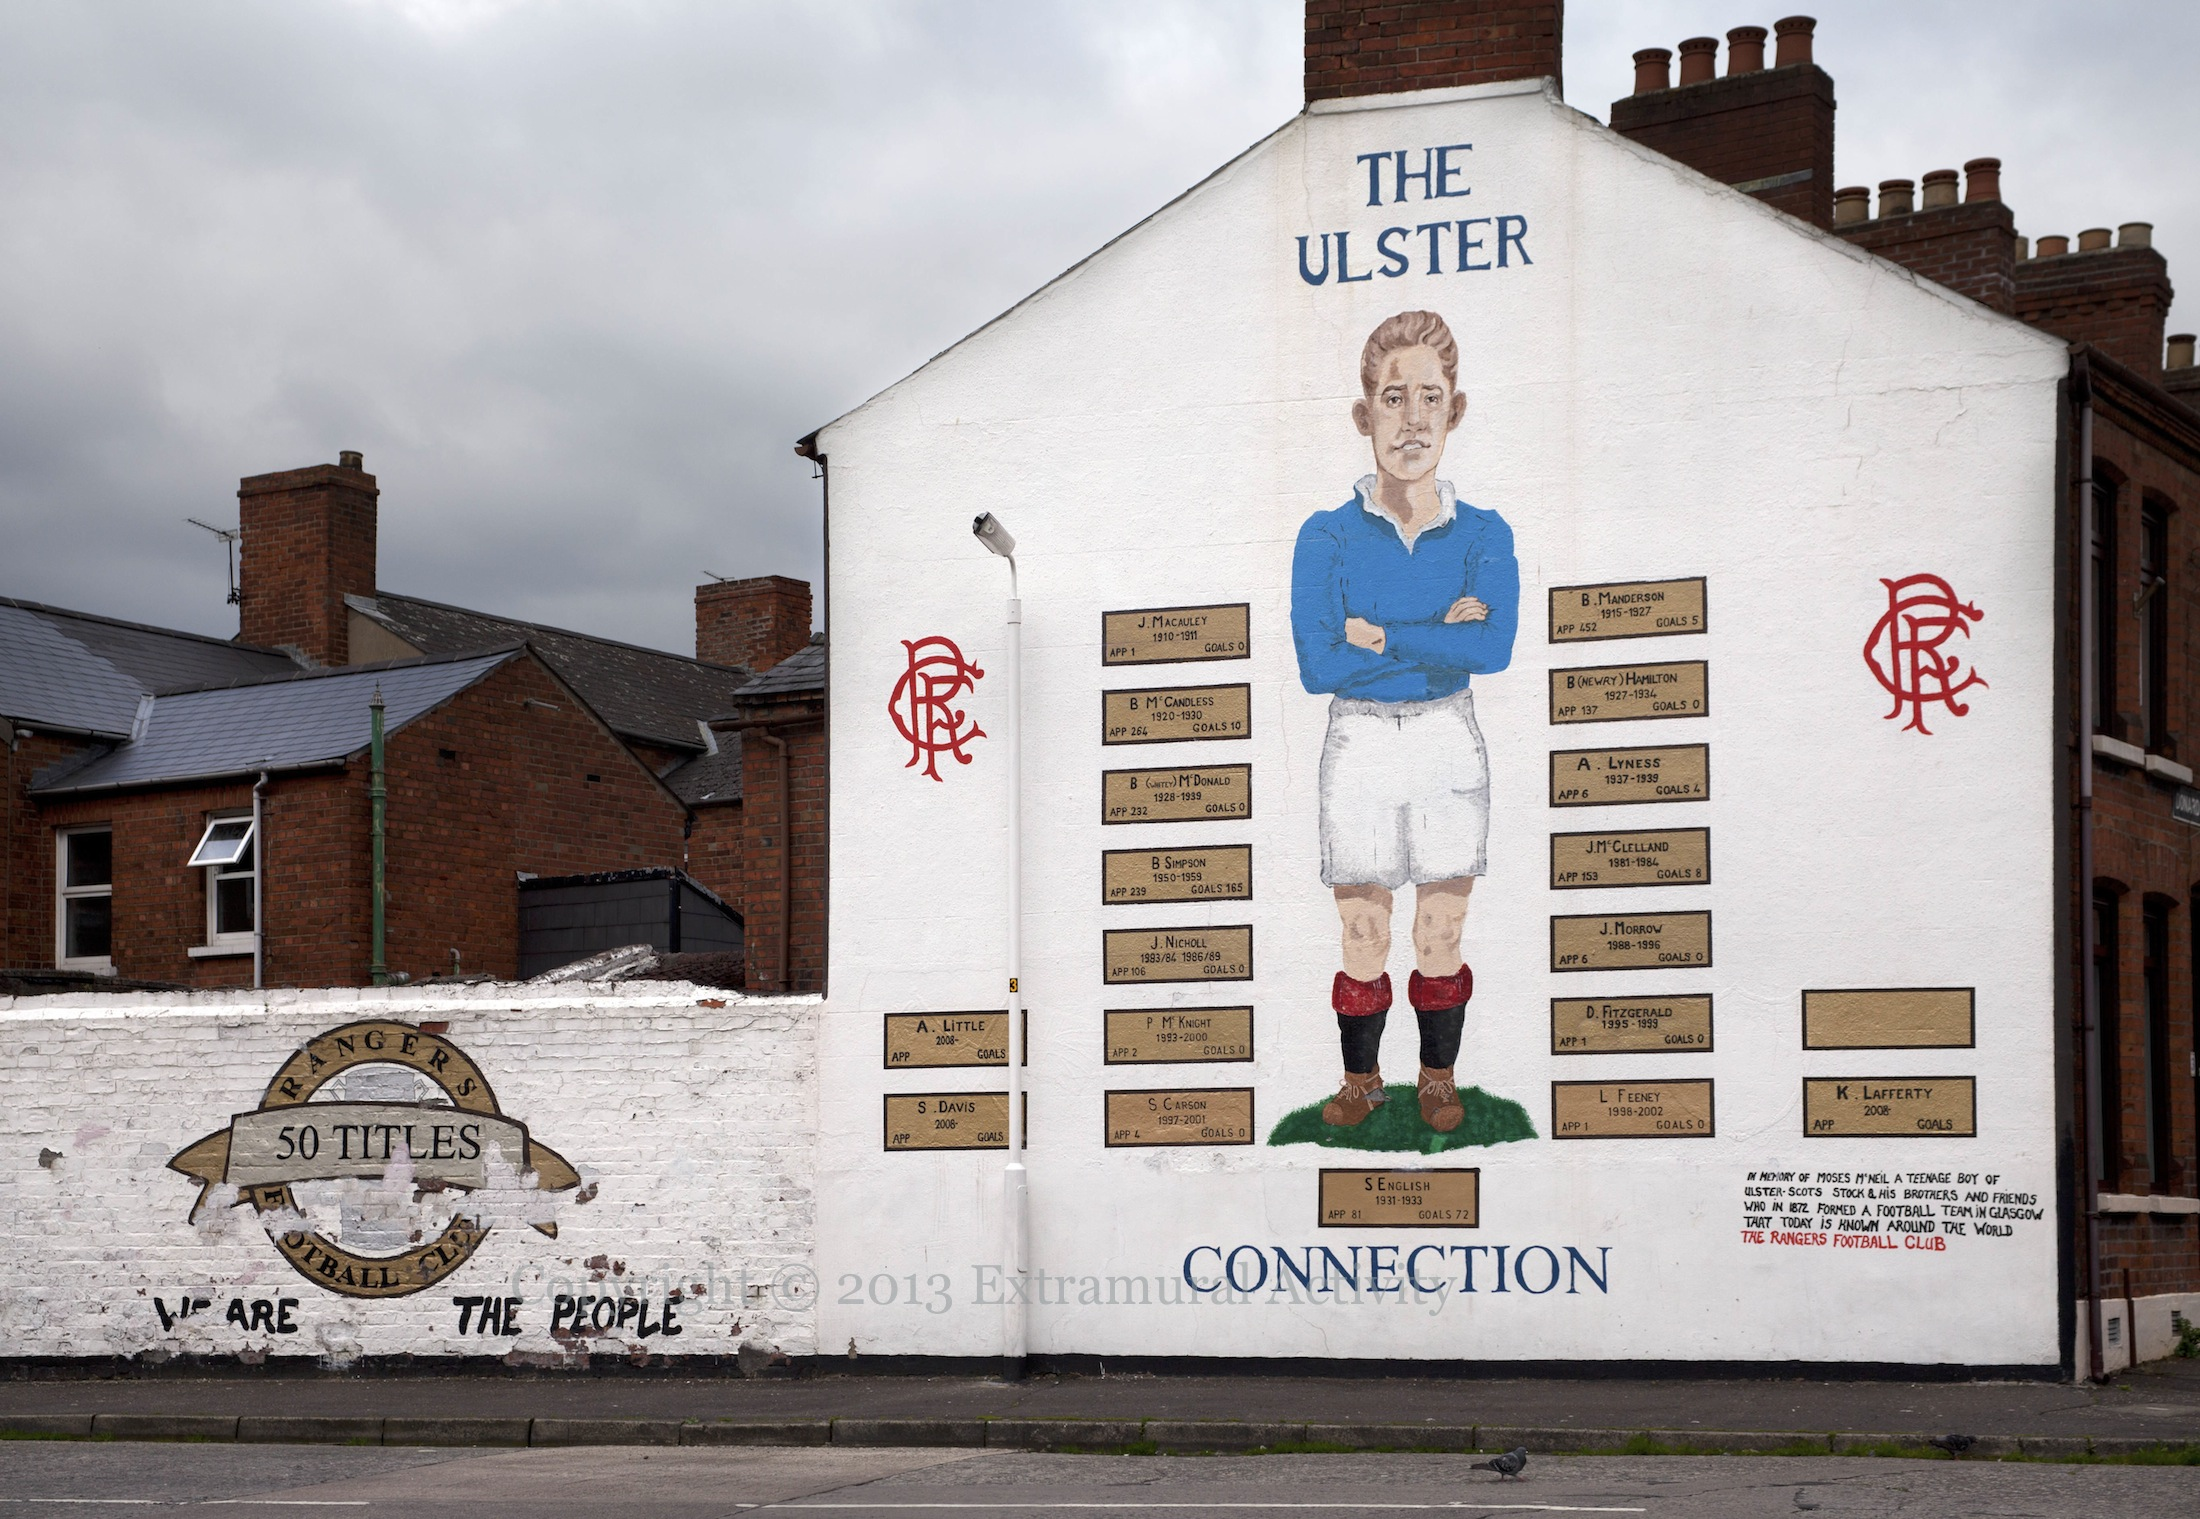 The ulster connection extramural activity for Mural belfast